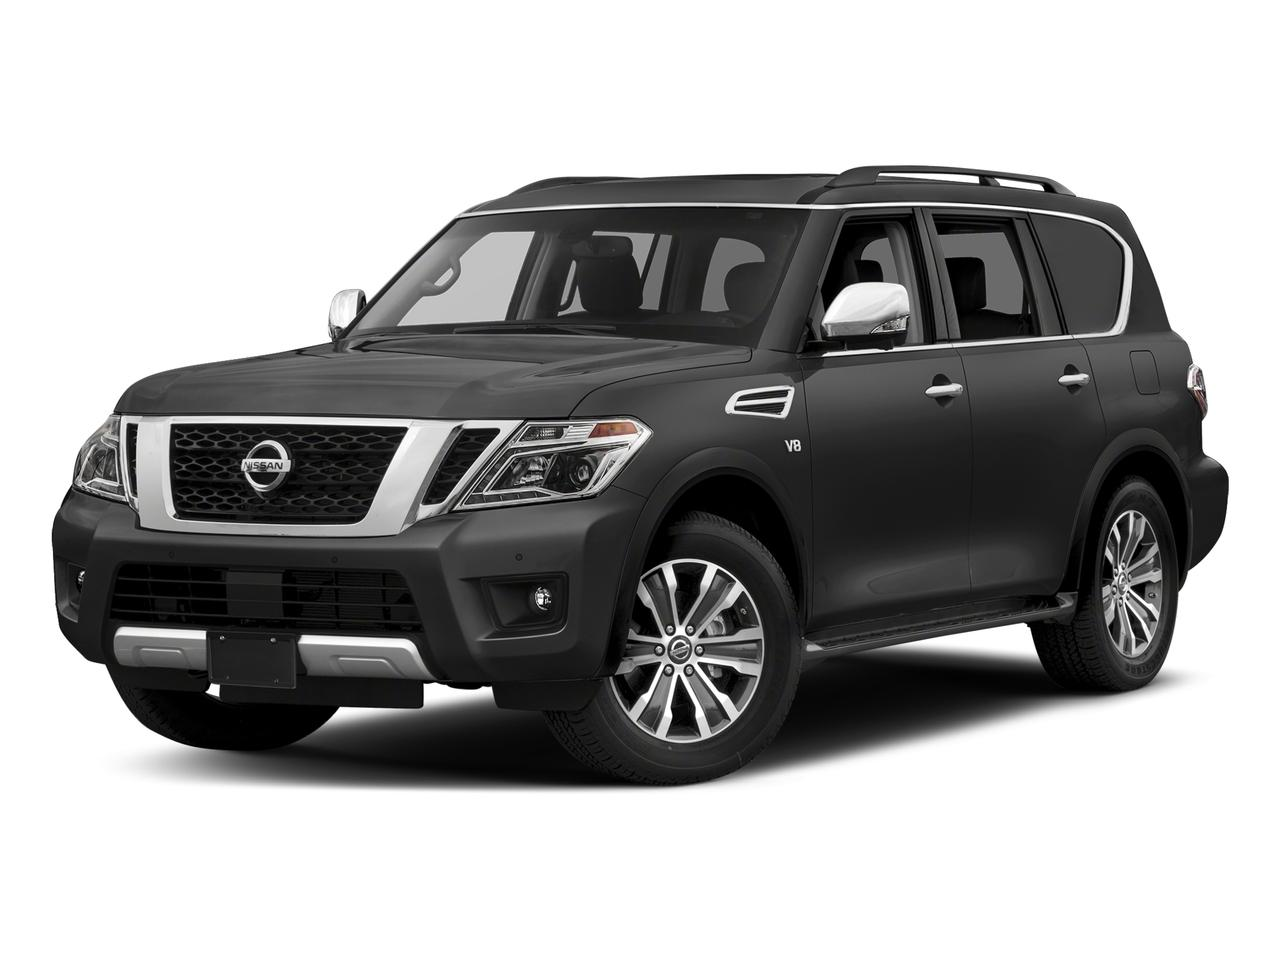 2017 Nissan Armada Vehicle Photo in Rockville, MD 20852